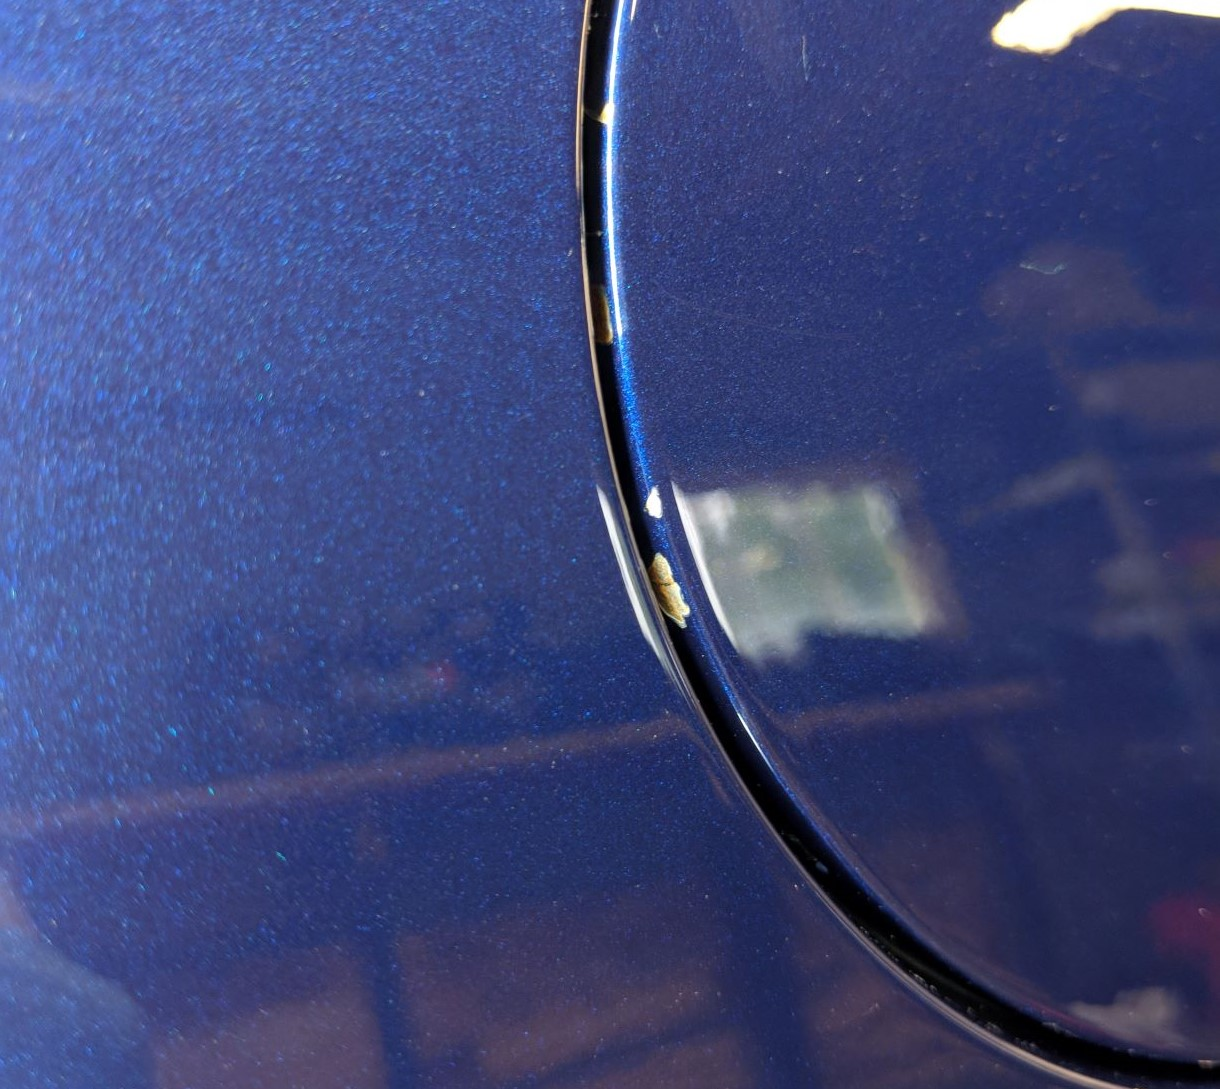 Gas cap paint chipping